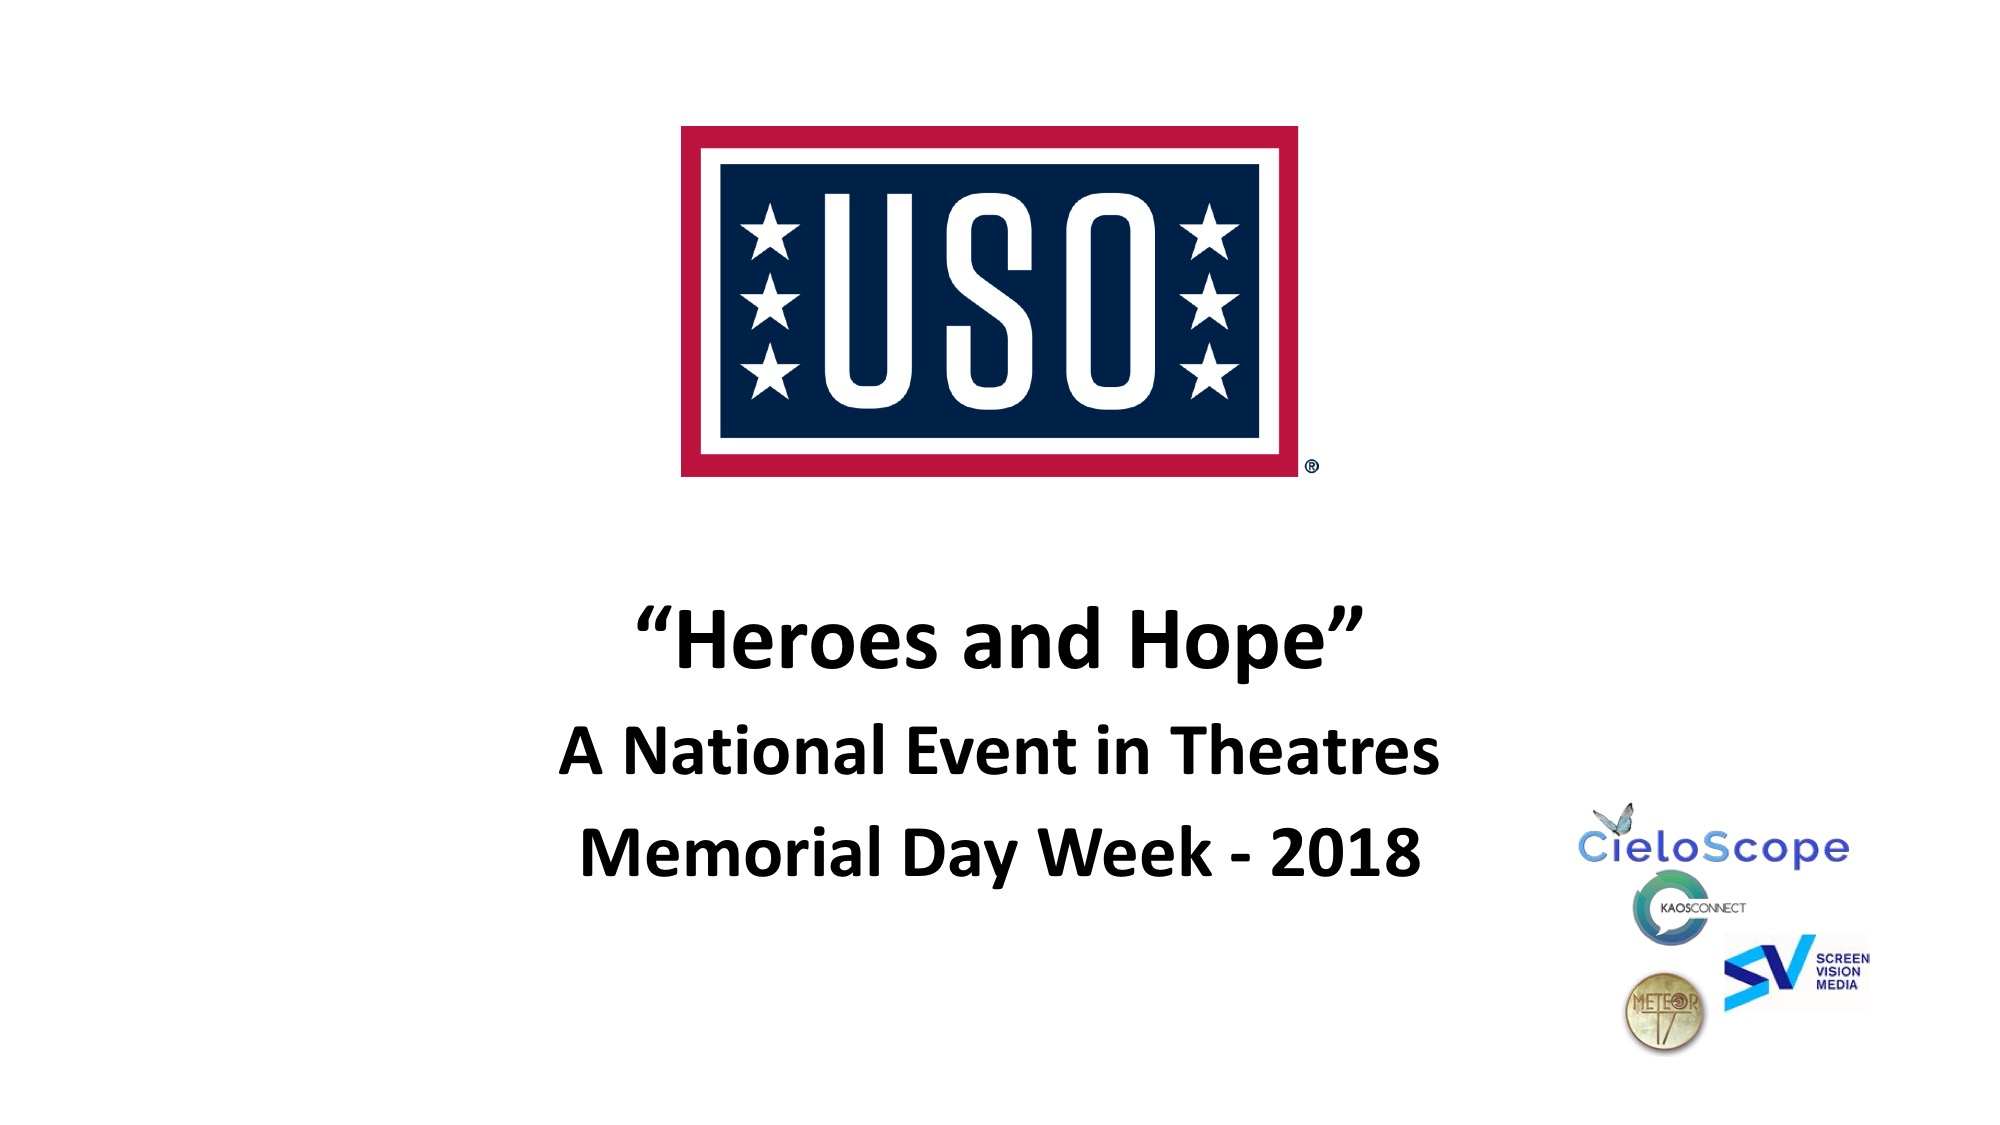 Heroes and Hope USO Overview_3.18.17 15.jpeg